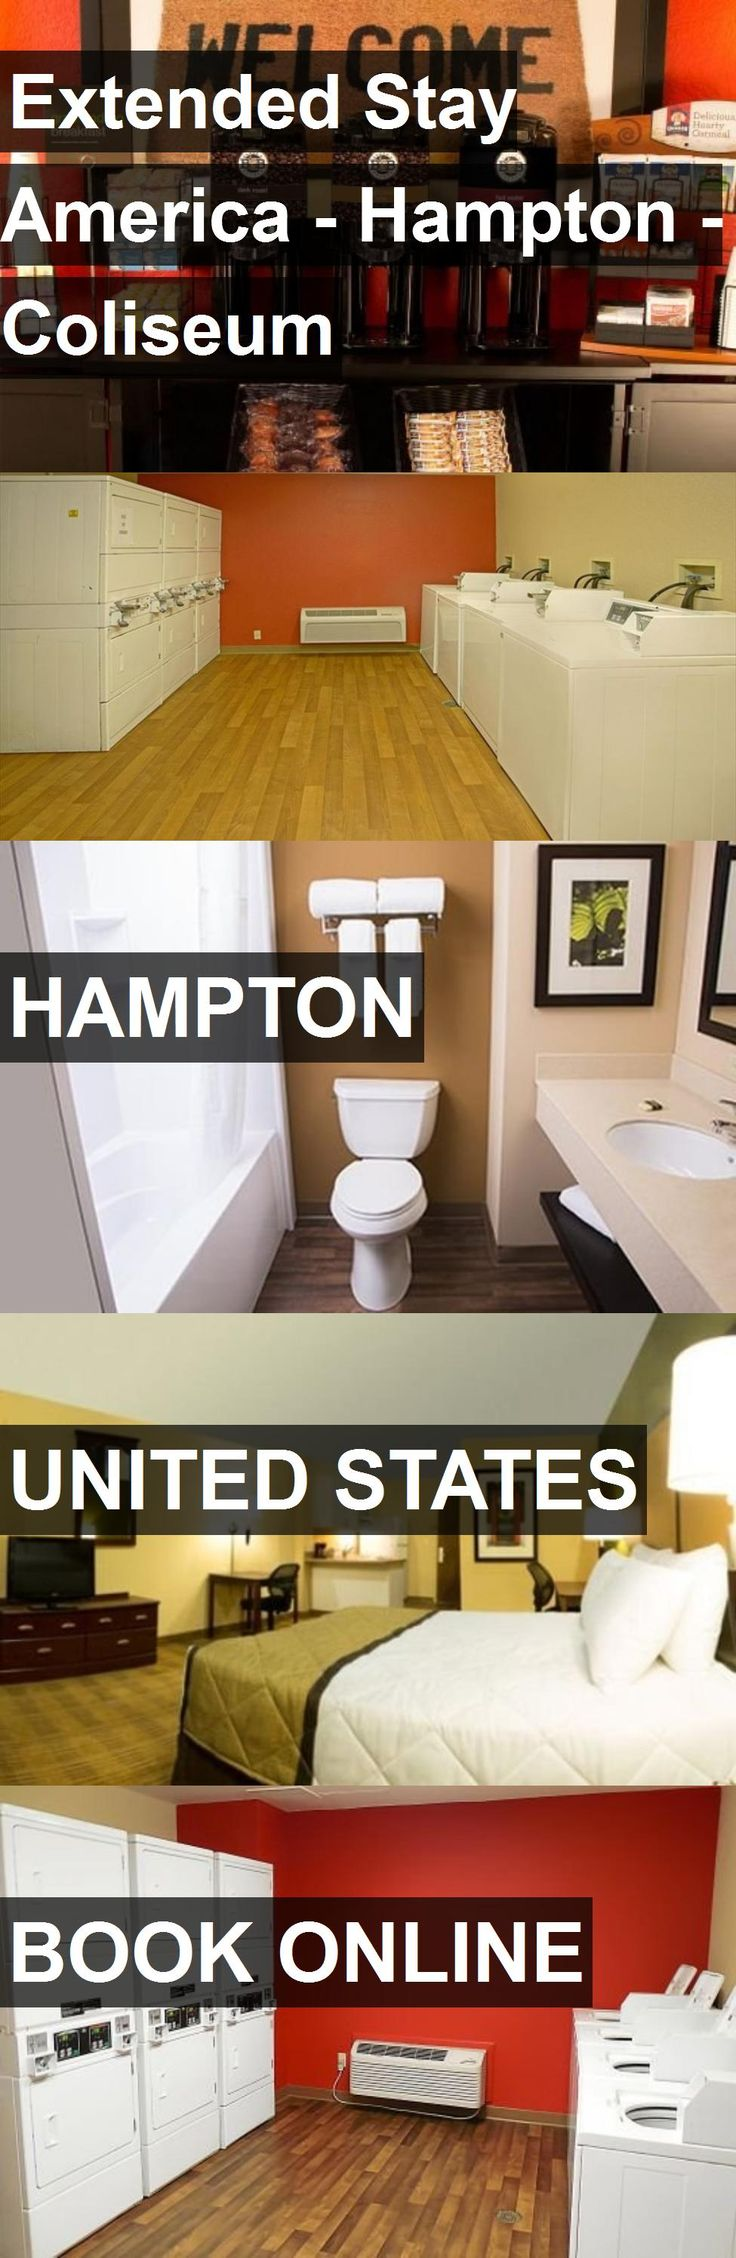 Hotel Extended Stay America - Hampton - Coliseum in Hampton, United States. For more information, photos, reviews and best prices please follow the link. #UnitedStates #Hampton #ExtendedStayAmerica-Hampton-Coliseum #hotel #travel #vacation